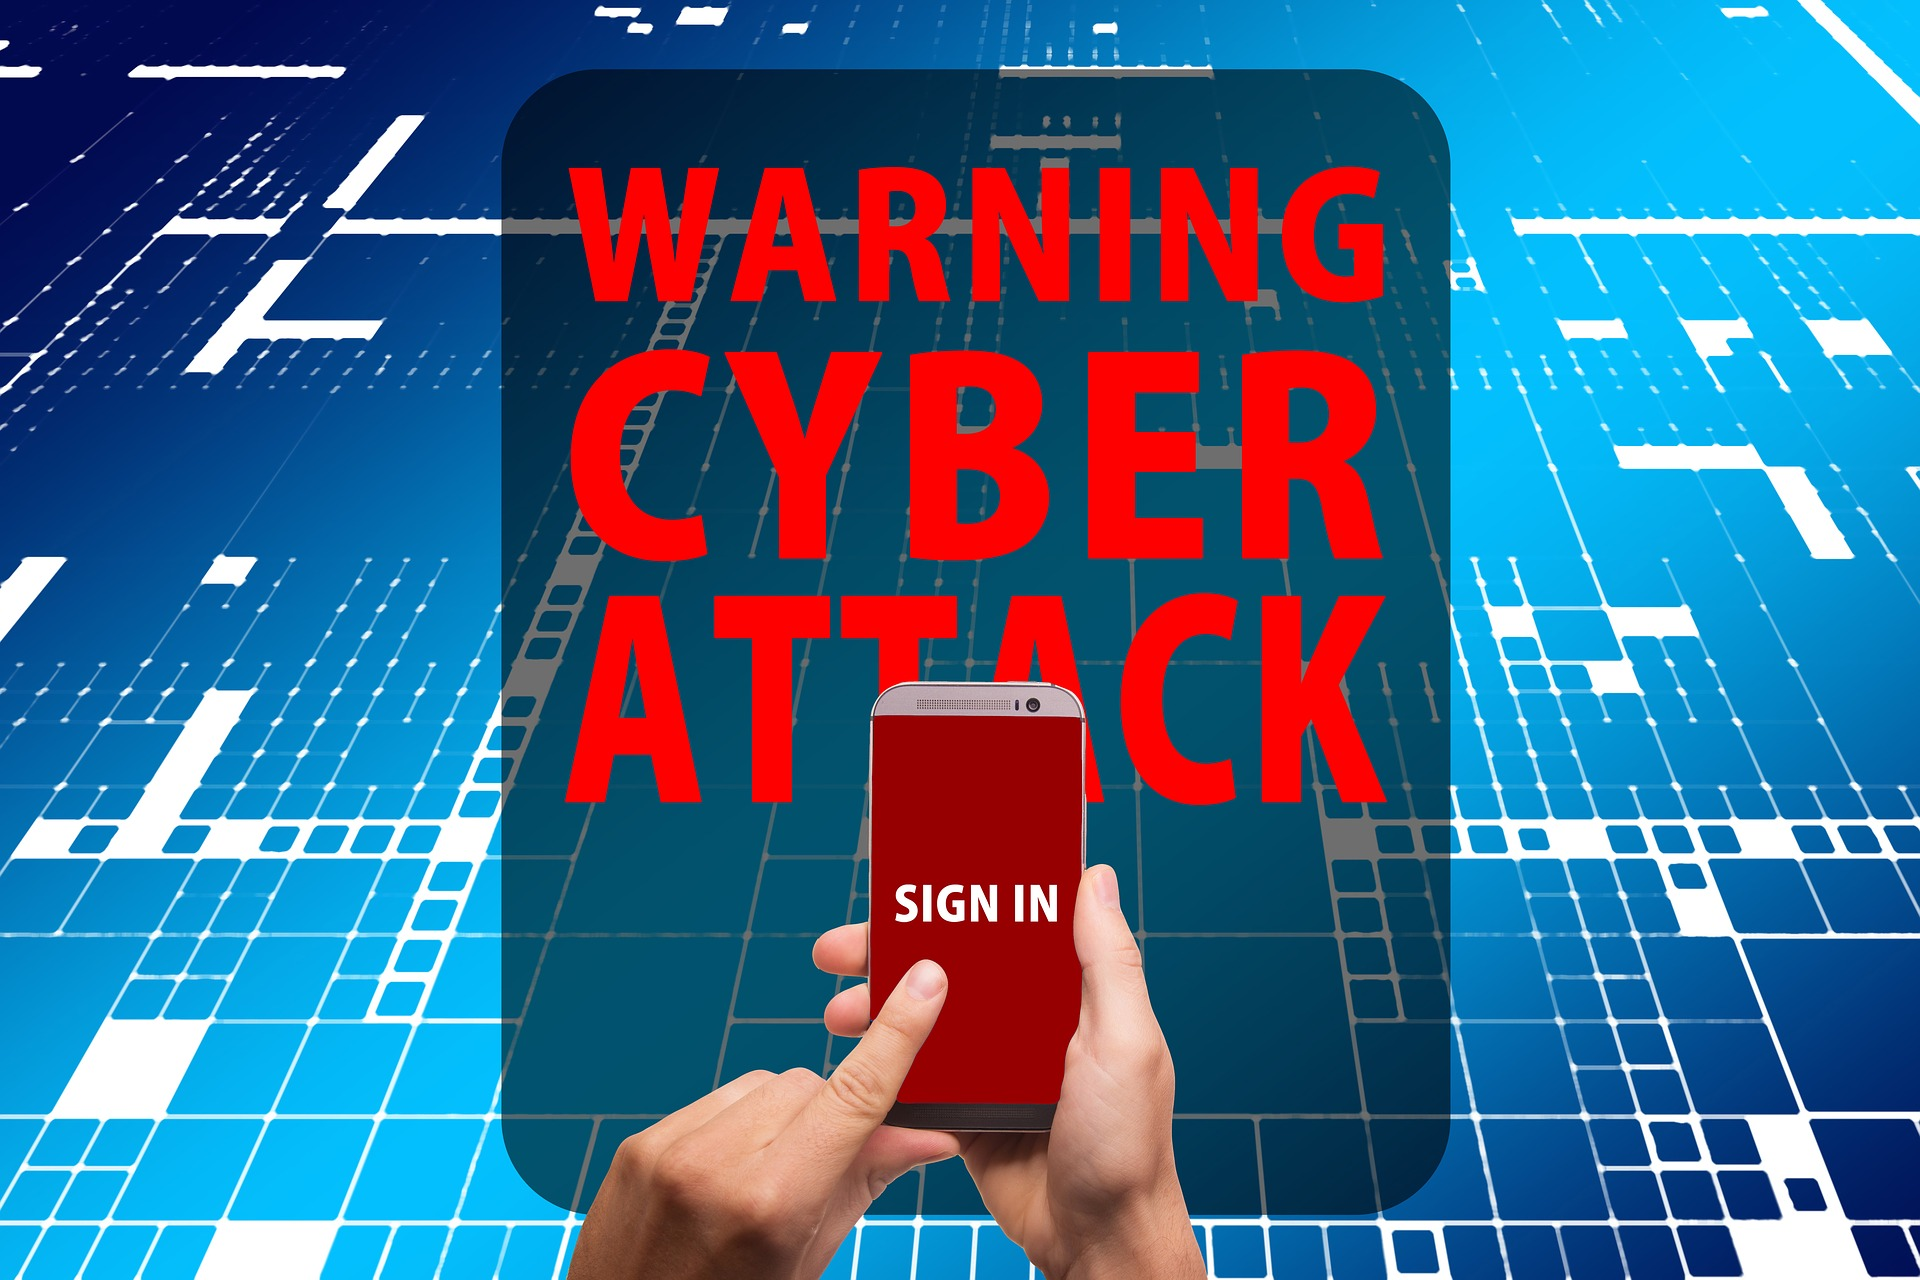 warning cyber attack cyberatak